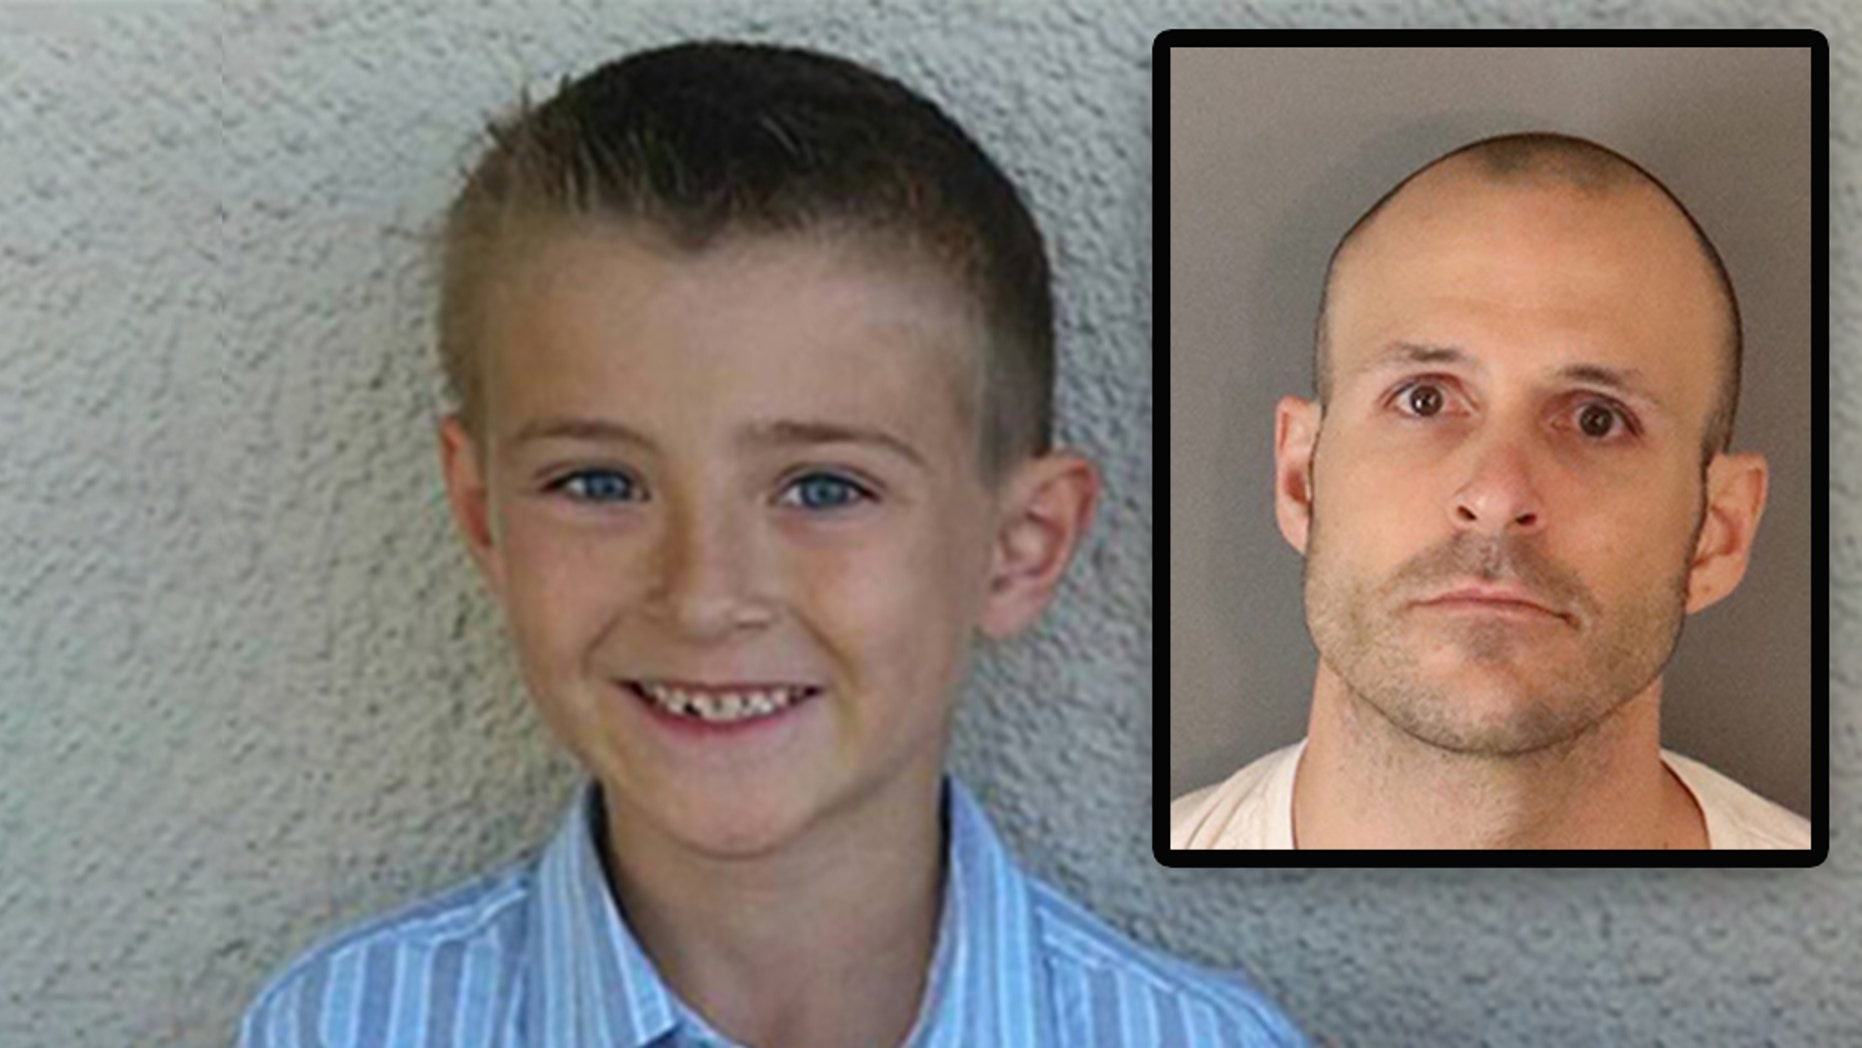 Corona Police Chief George Johnstone announced at a press conference that efforts to find Noah McIntosh alive had shifted to a homicide investigation.